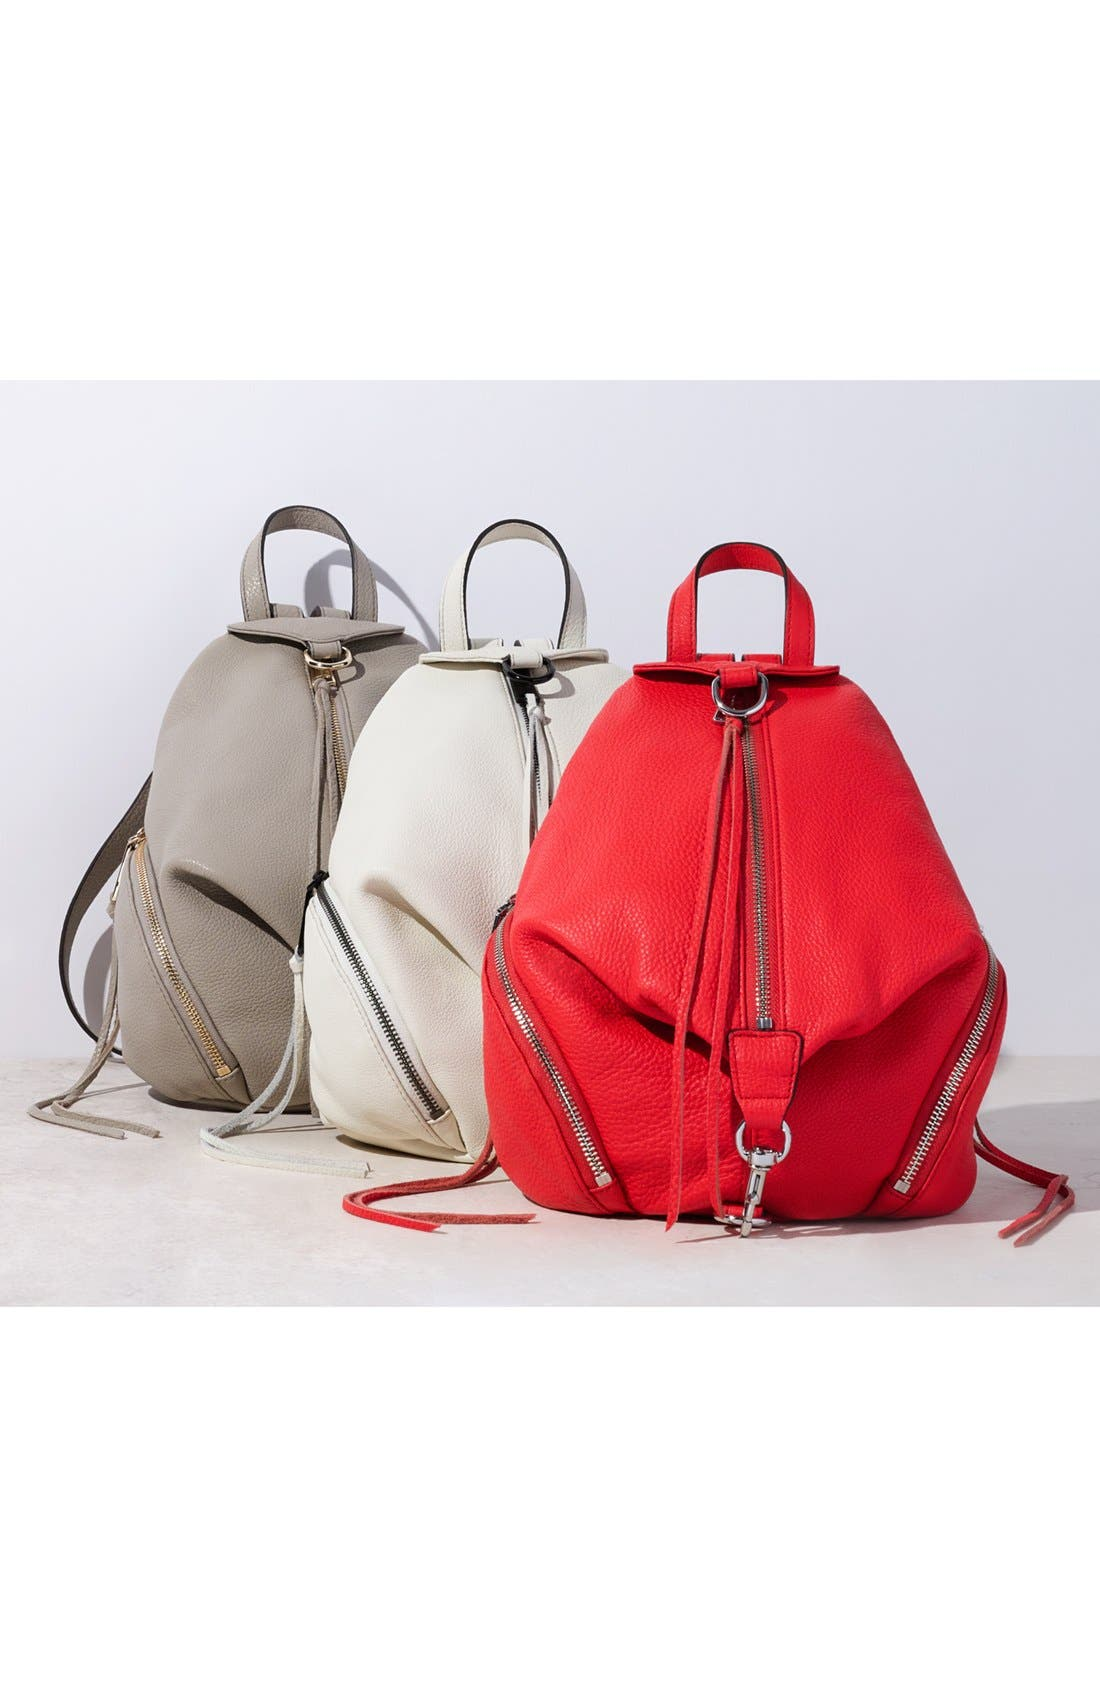 Medium Julian Backpack,                             Alternate thumbnail 7, color,                             332